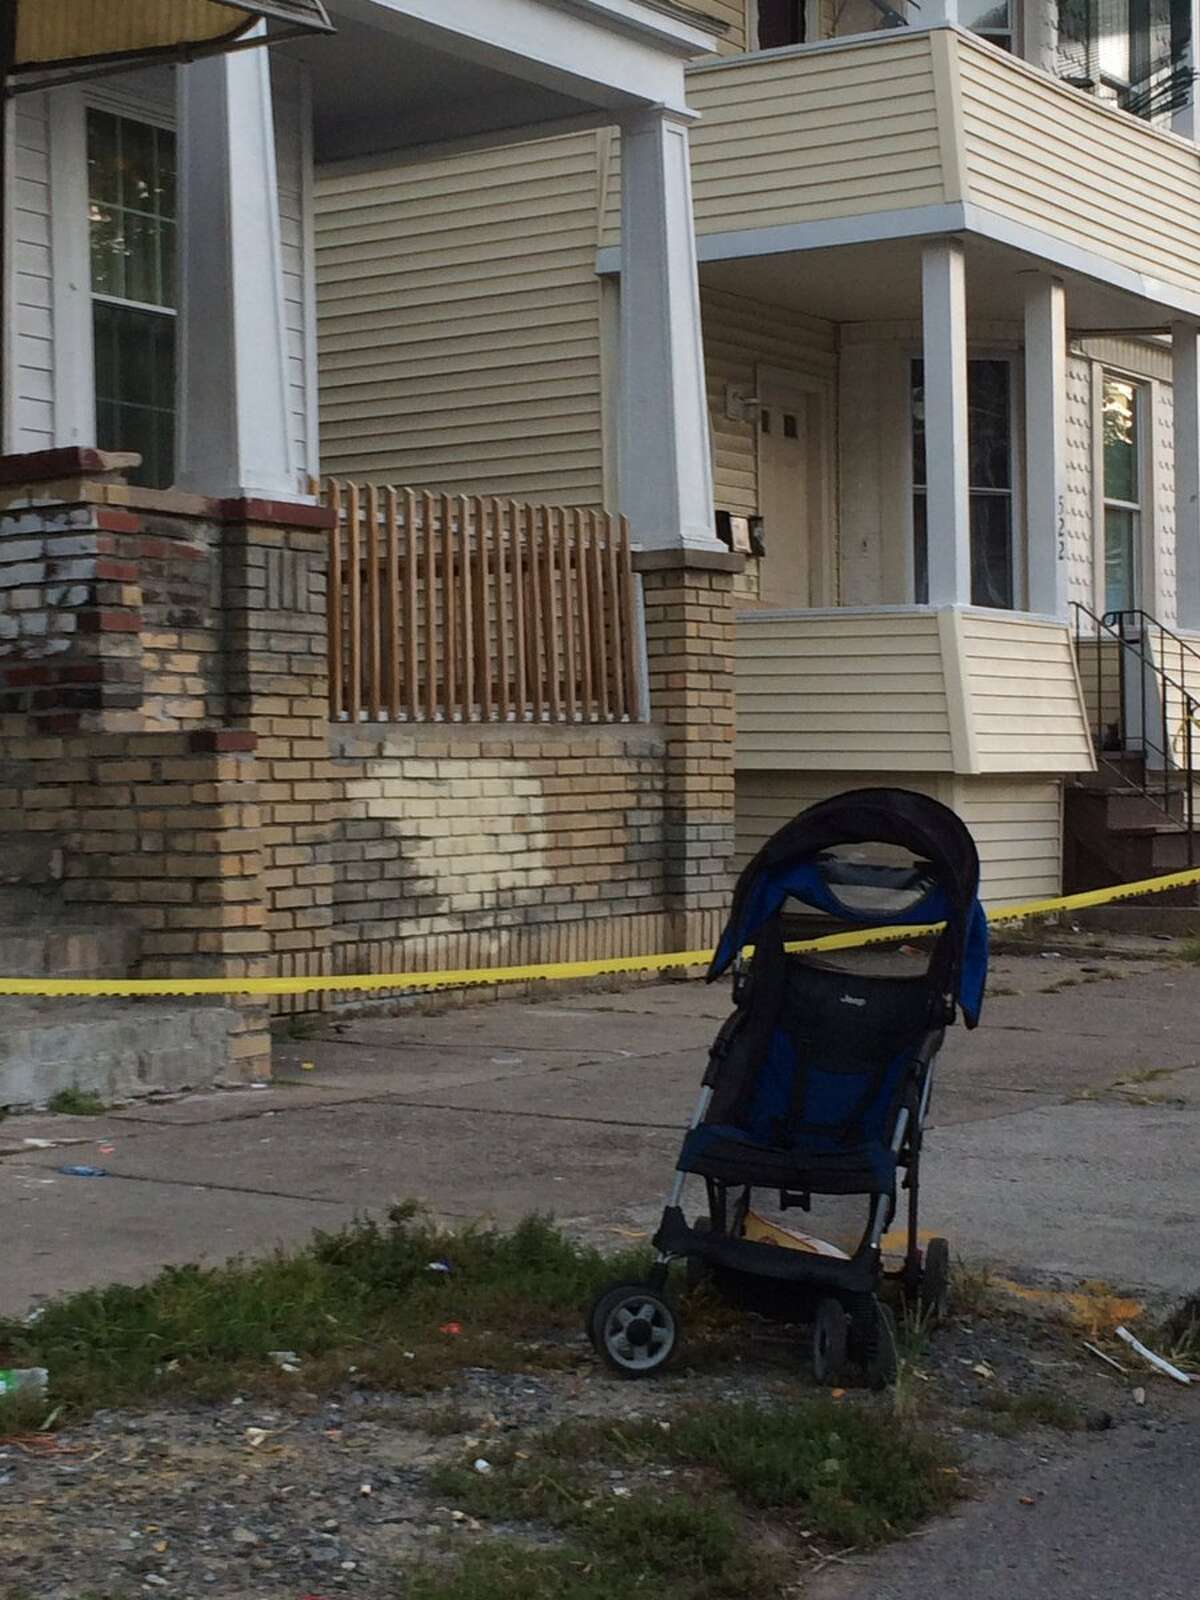 A baby stroller can be seen in the foreground as the sun rises on Schenectady Street Friday morning. Police are investigating the late-night killing of a 17-year-old girl who was shot in the head inside her second-floor apartment at 524 Schenectady St. (Emily Masters / Times Union)